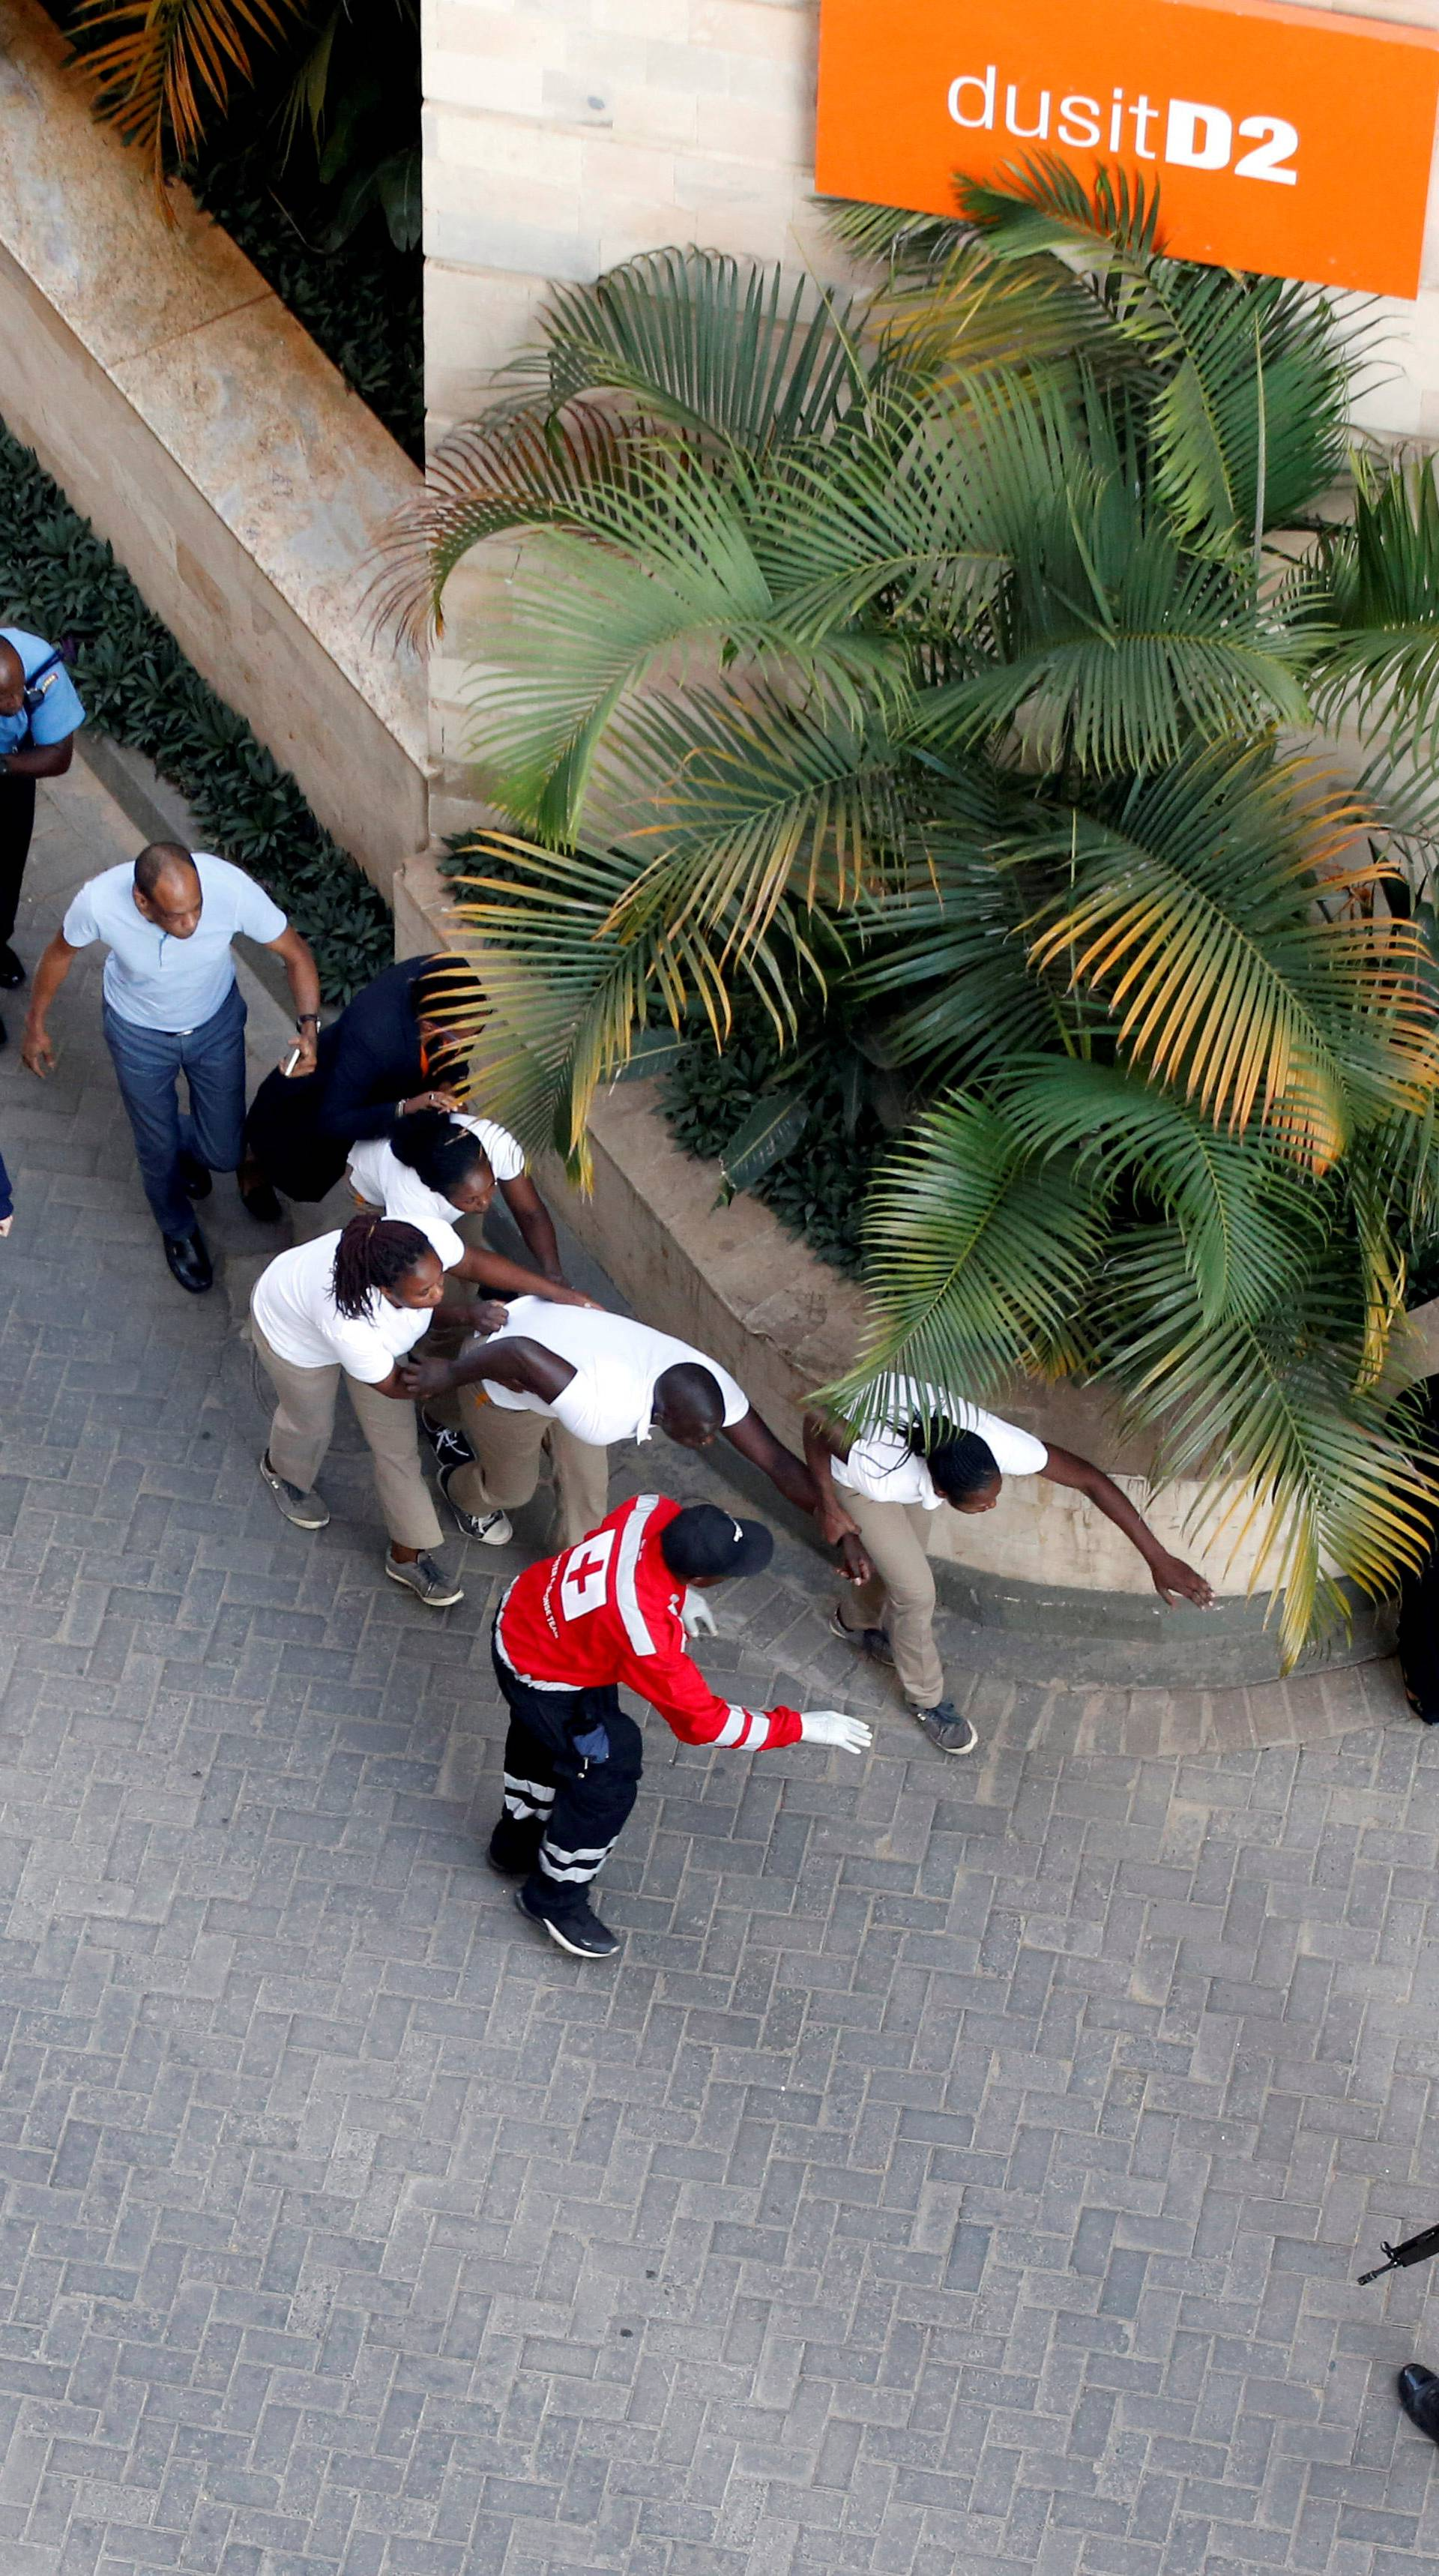 People are evacuated at the scene where explosions and gunshots were heard at the Dusit hotel compound, in Nairobi